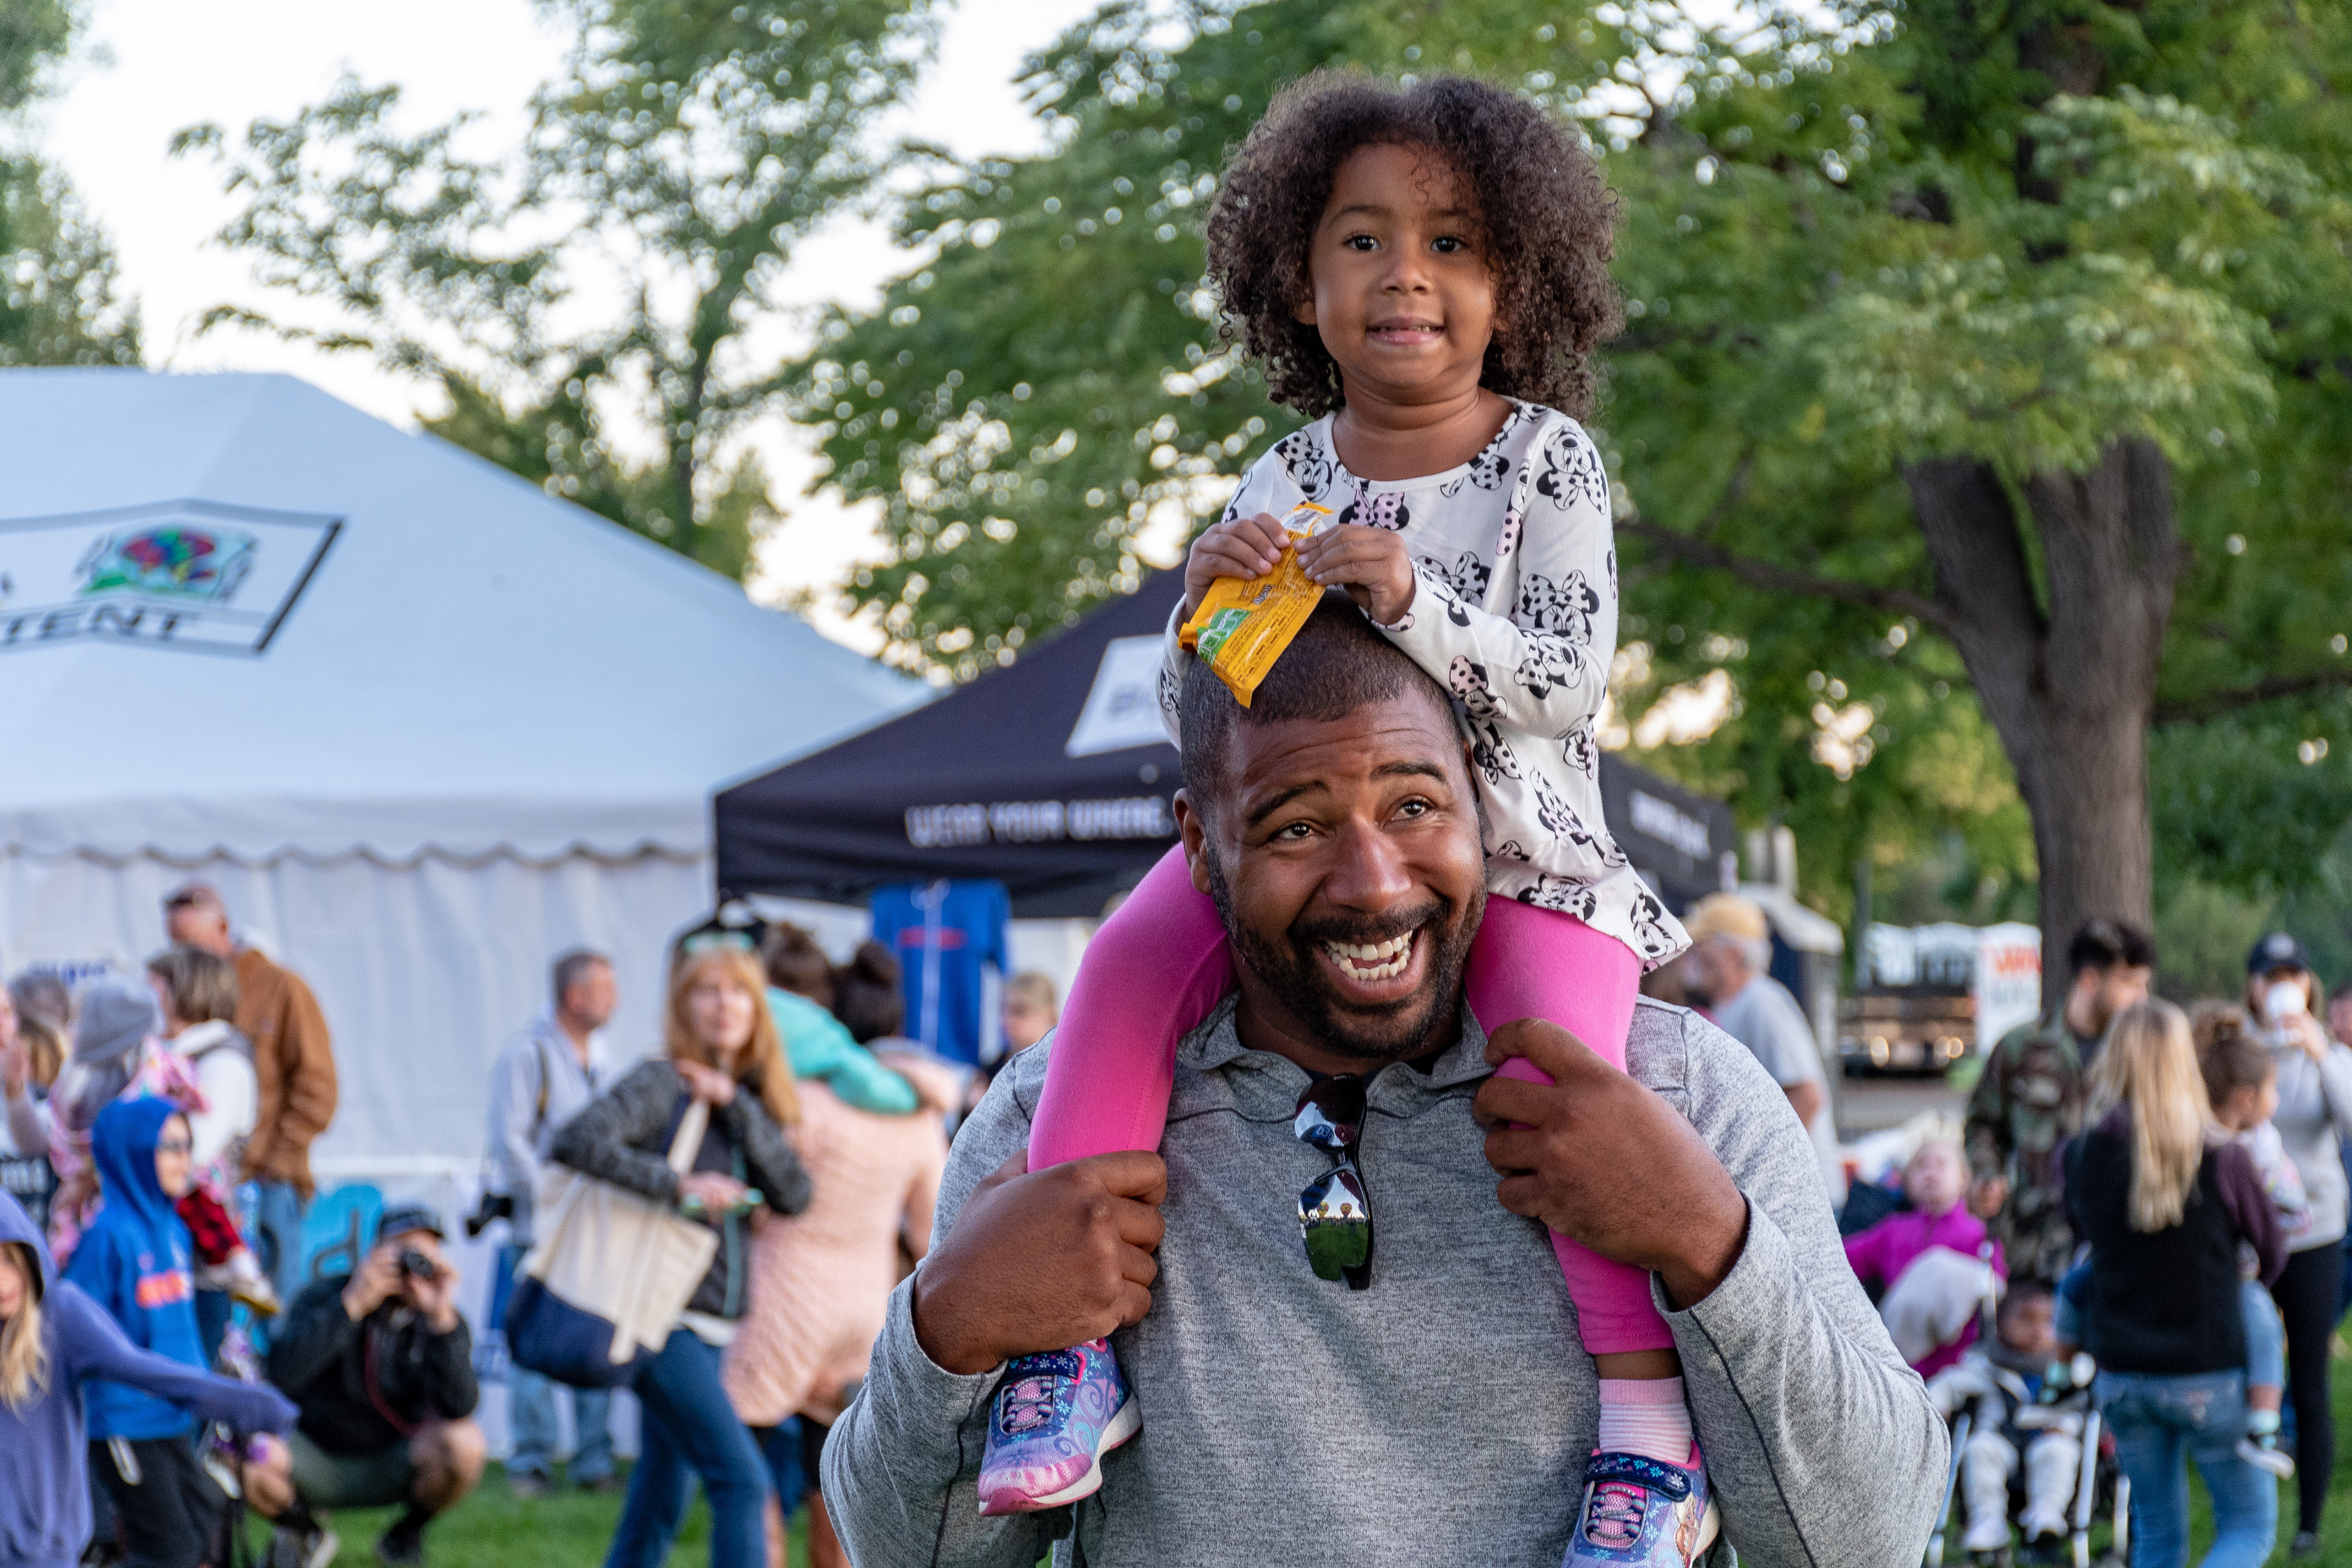 A young girl sits on her father's shoulders at an outdoor community event.